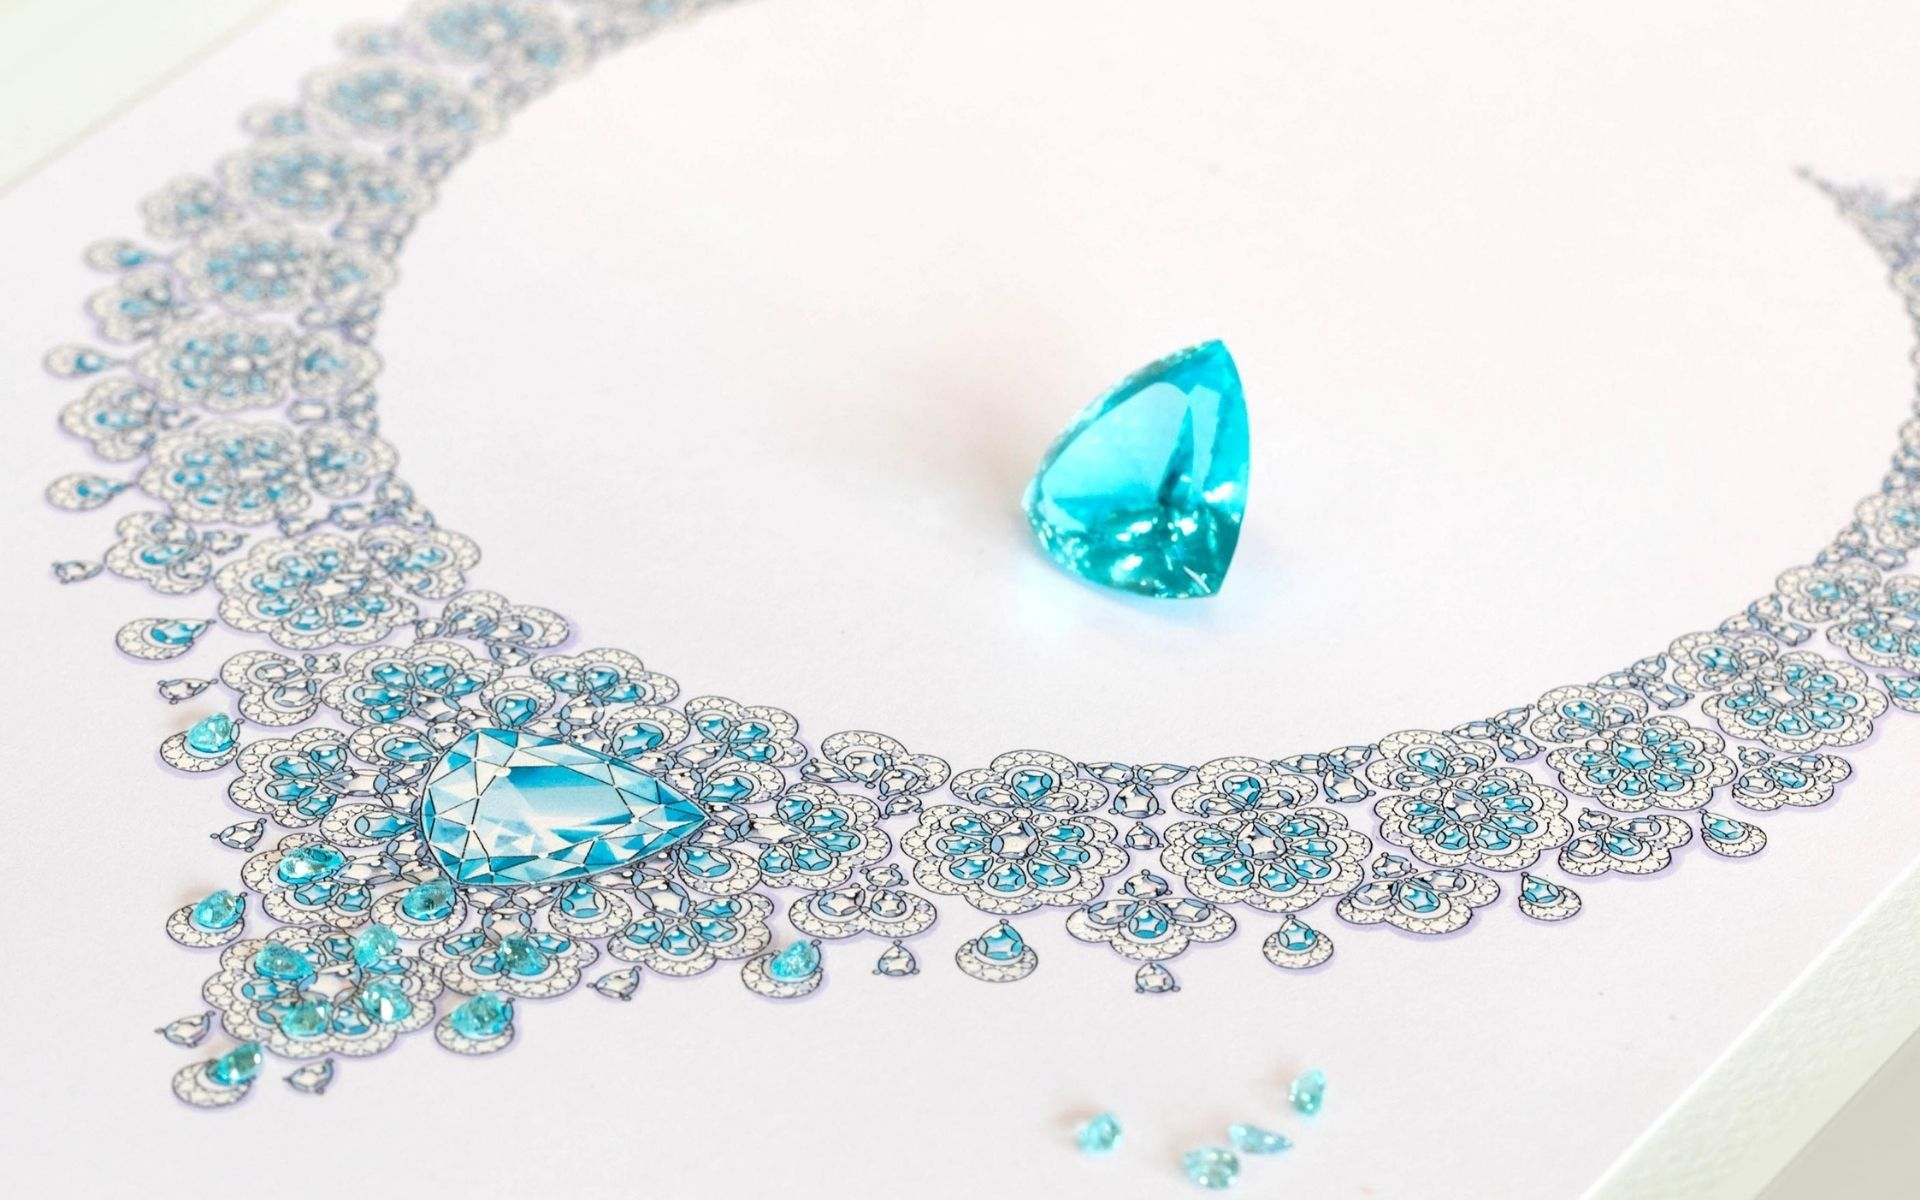 The star of the Majestic Paraiba Tourmaline Necklace is a gorgeous 34.63-carat Paraiba tourmaline from Mozambique.